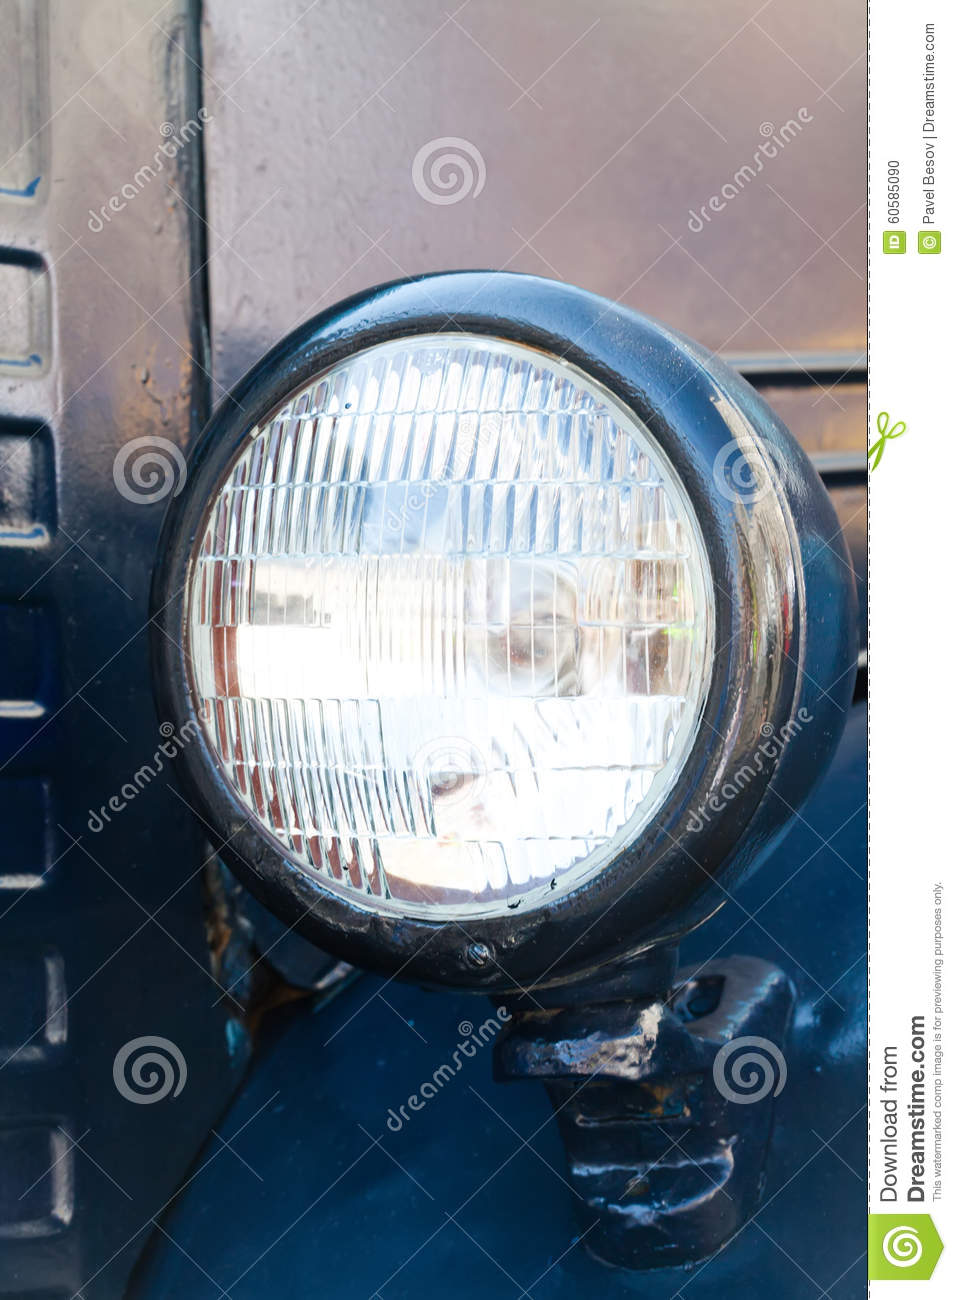 Vintage Style Blue Car Headlight. Close-up Stock Photo - Image of ... for Truck Light Texture  557ylc